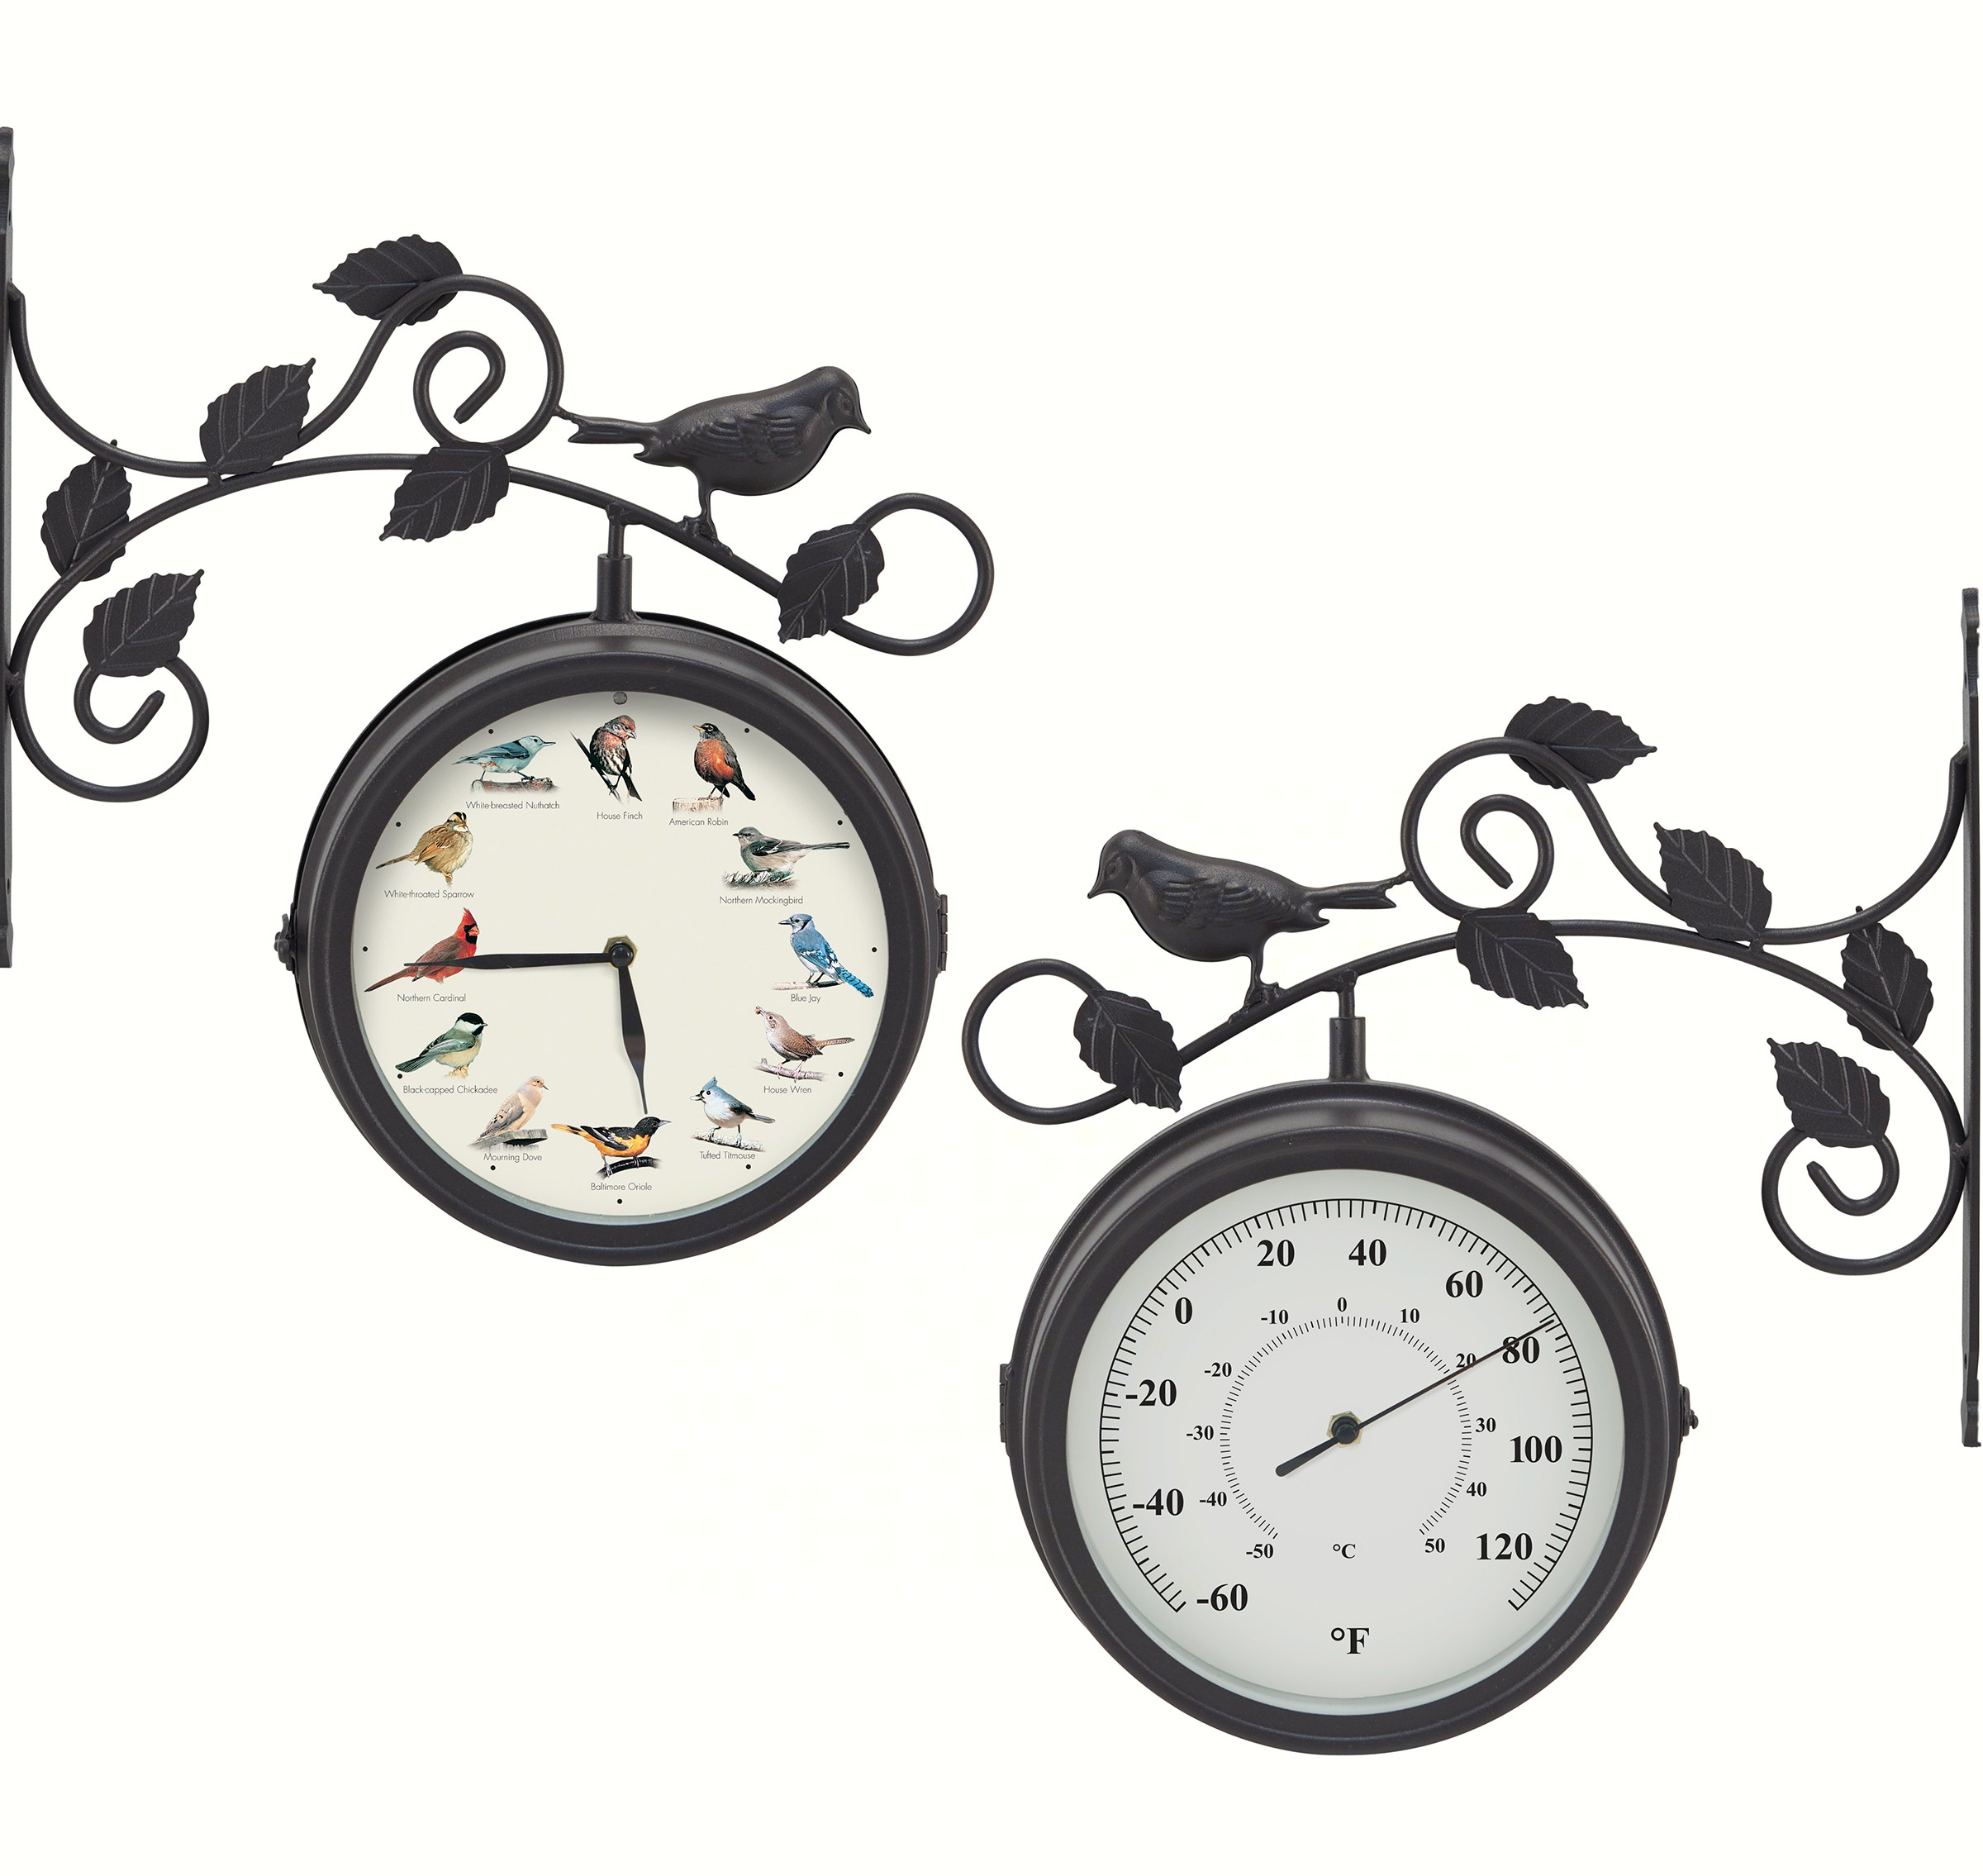 Decorative Outdoor Bird Clock/Thermometer